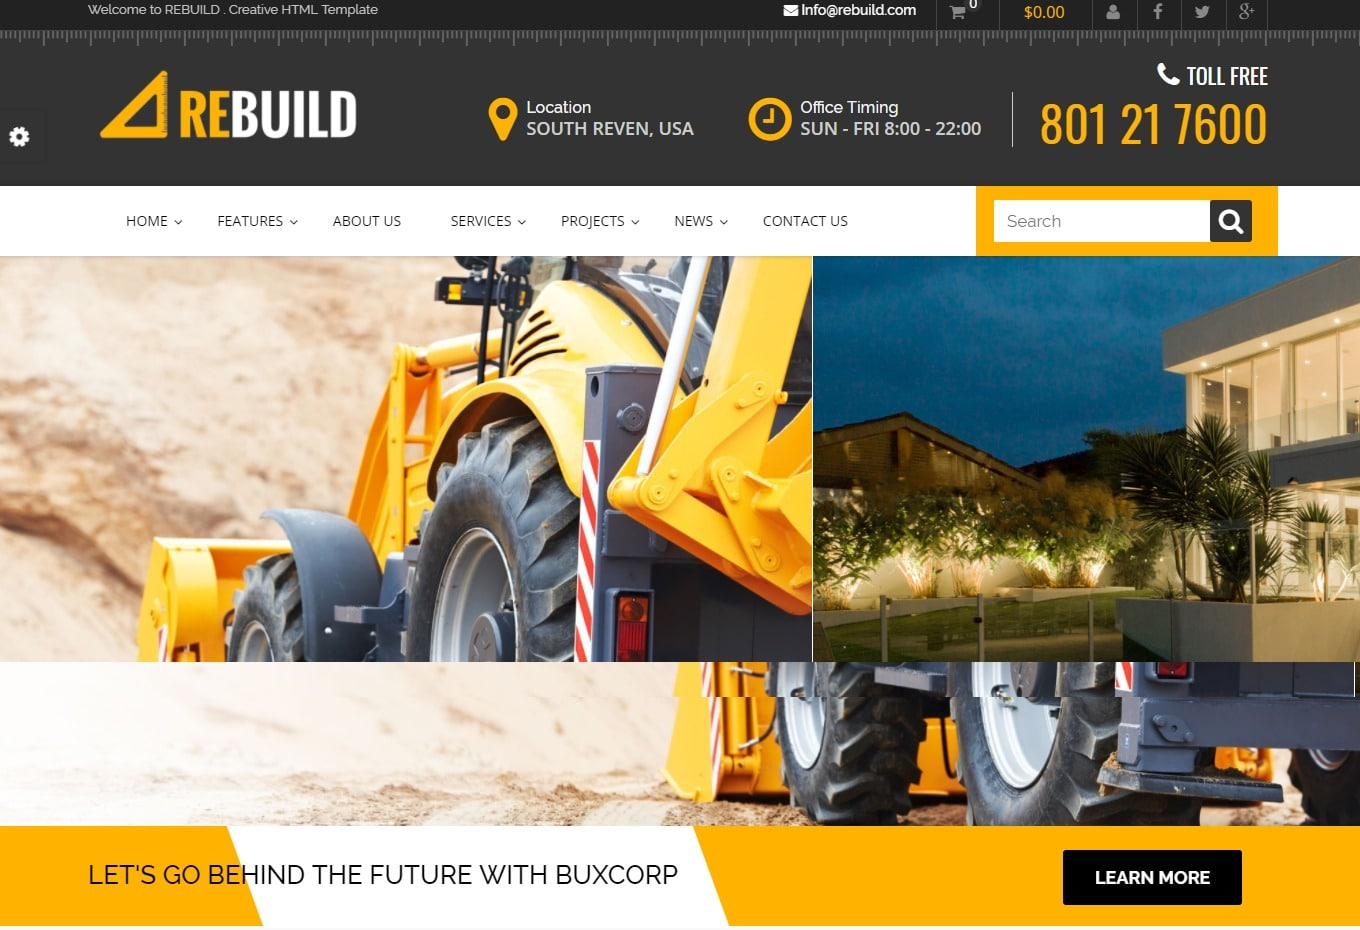 rebuild-html-construction-template